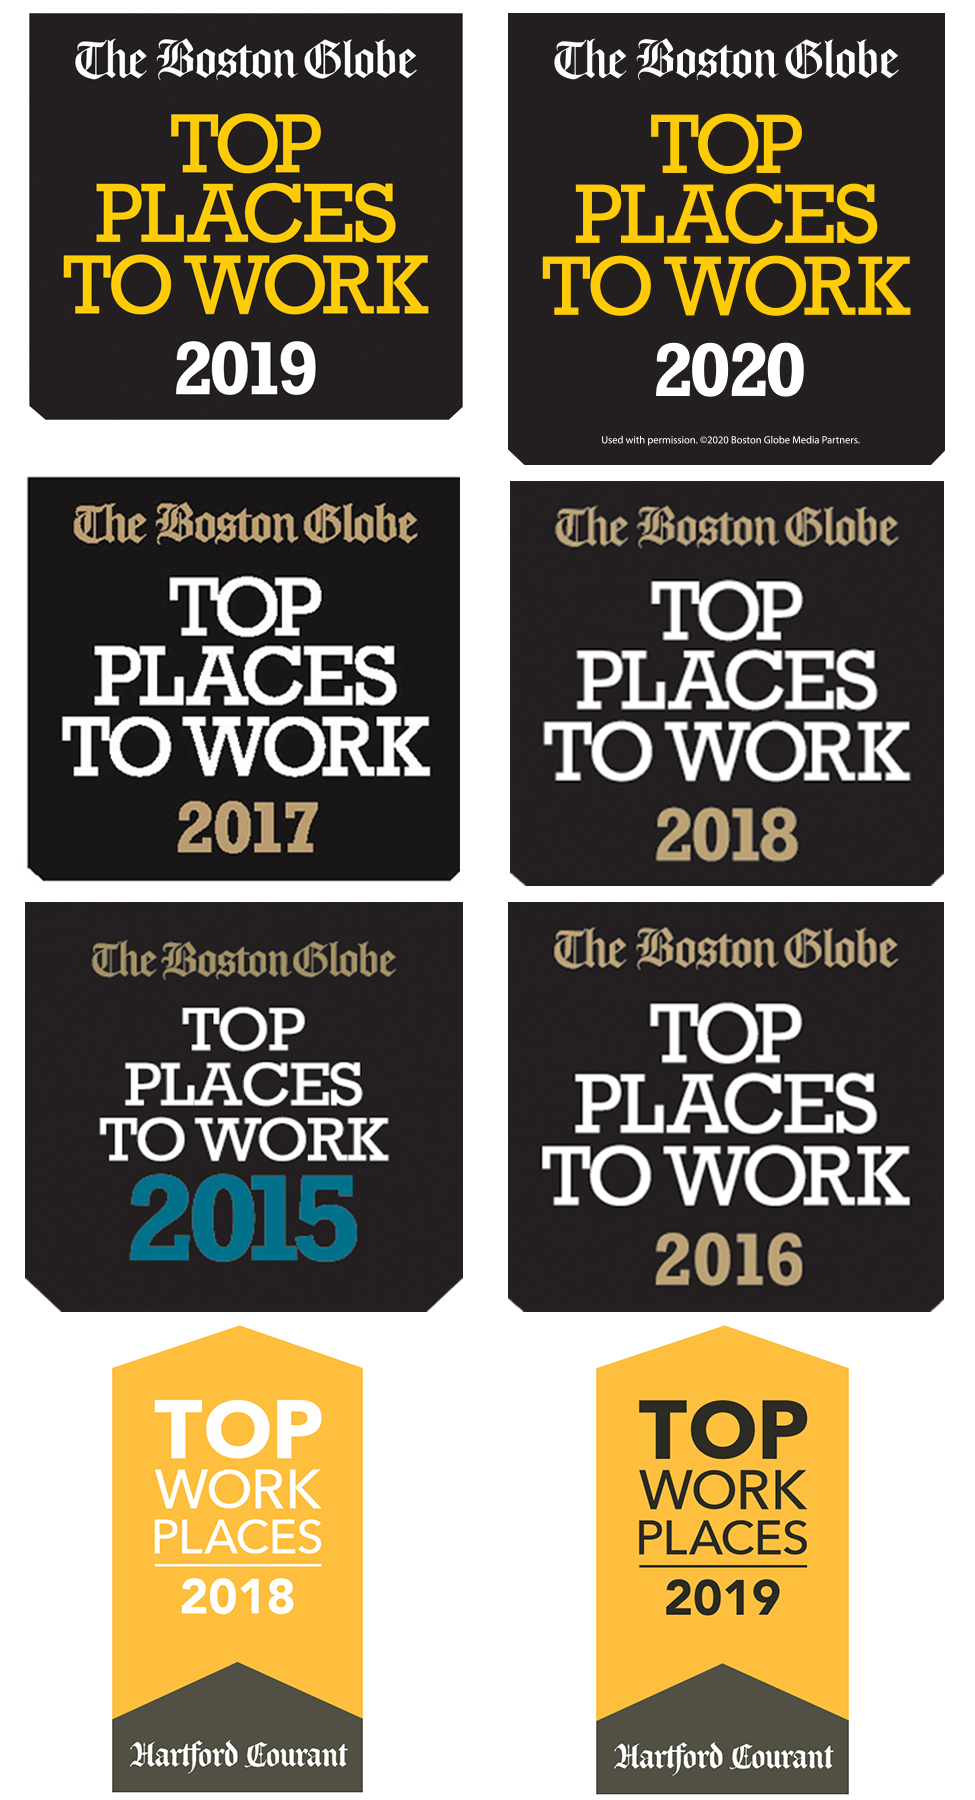 Boston Globe's Top Places to Work logo for six years and The Hartford Courant's Top Places to Work logo for three years